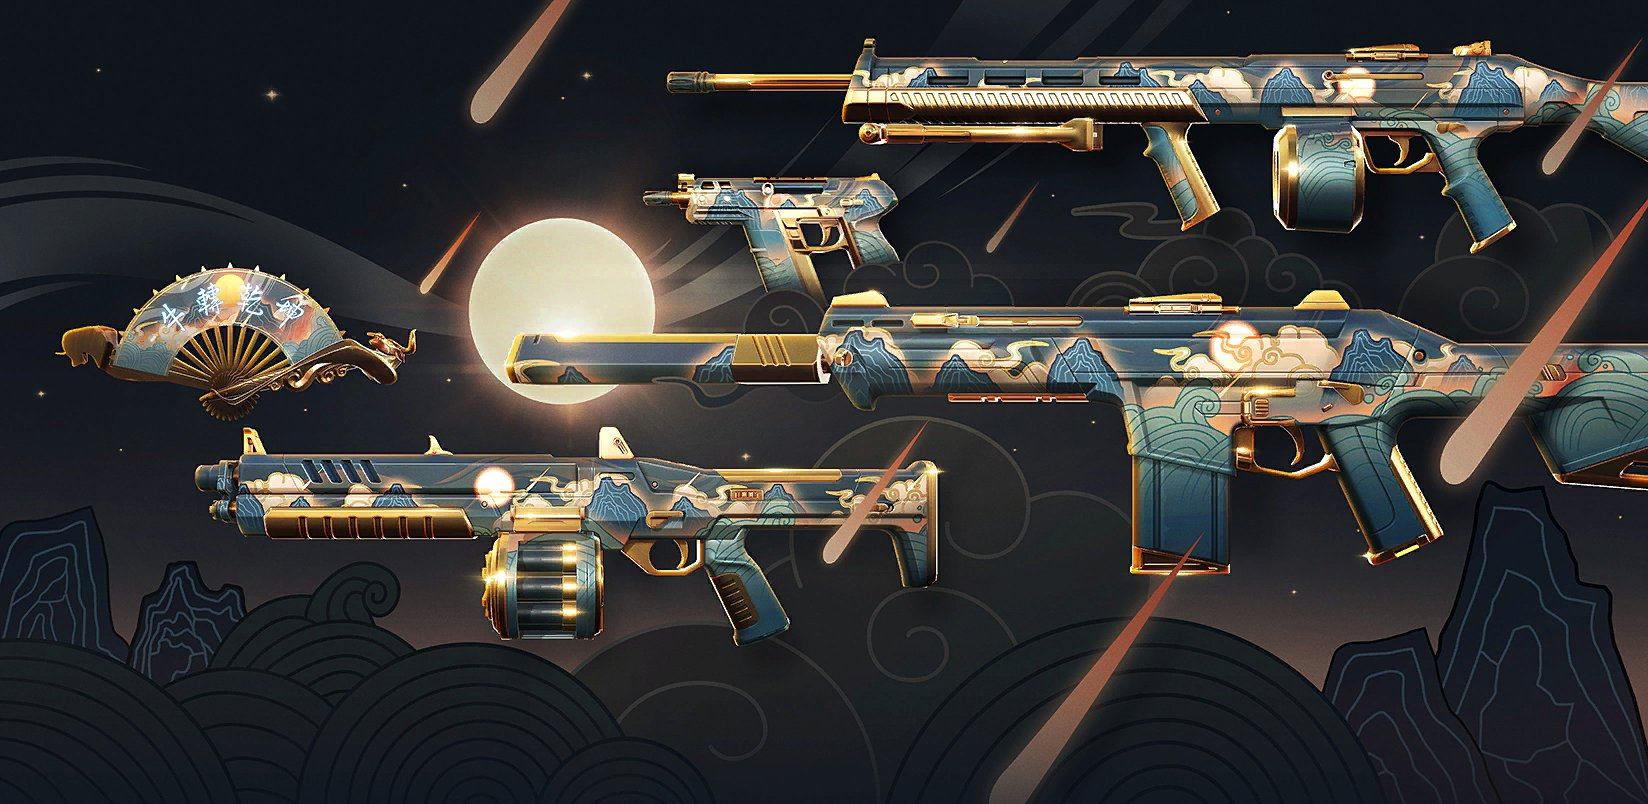 All Valorant Skin Bundles Levels, Weapons, Prizes   Asume Tech